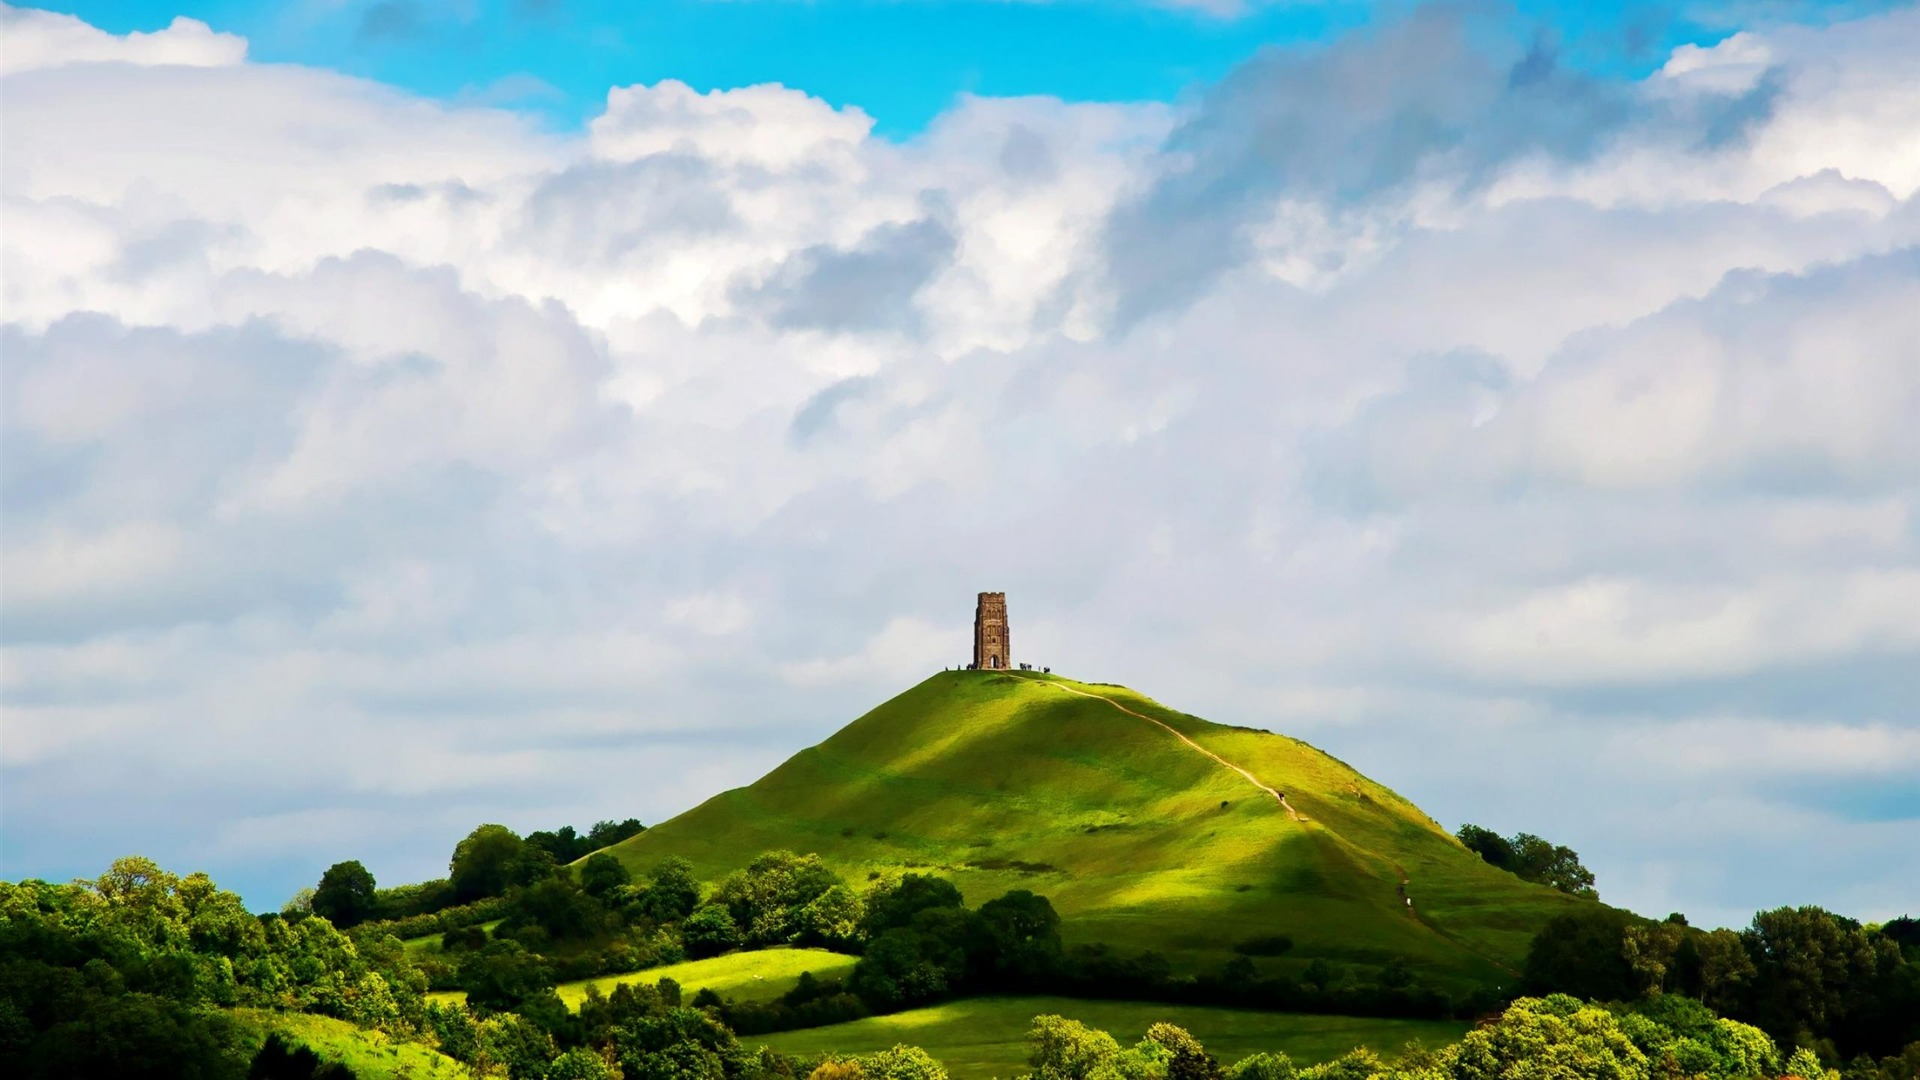 st michaels tower glastonbury englandnatural scenery